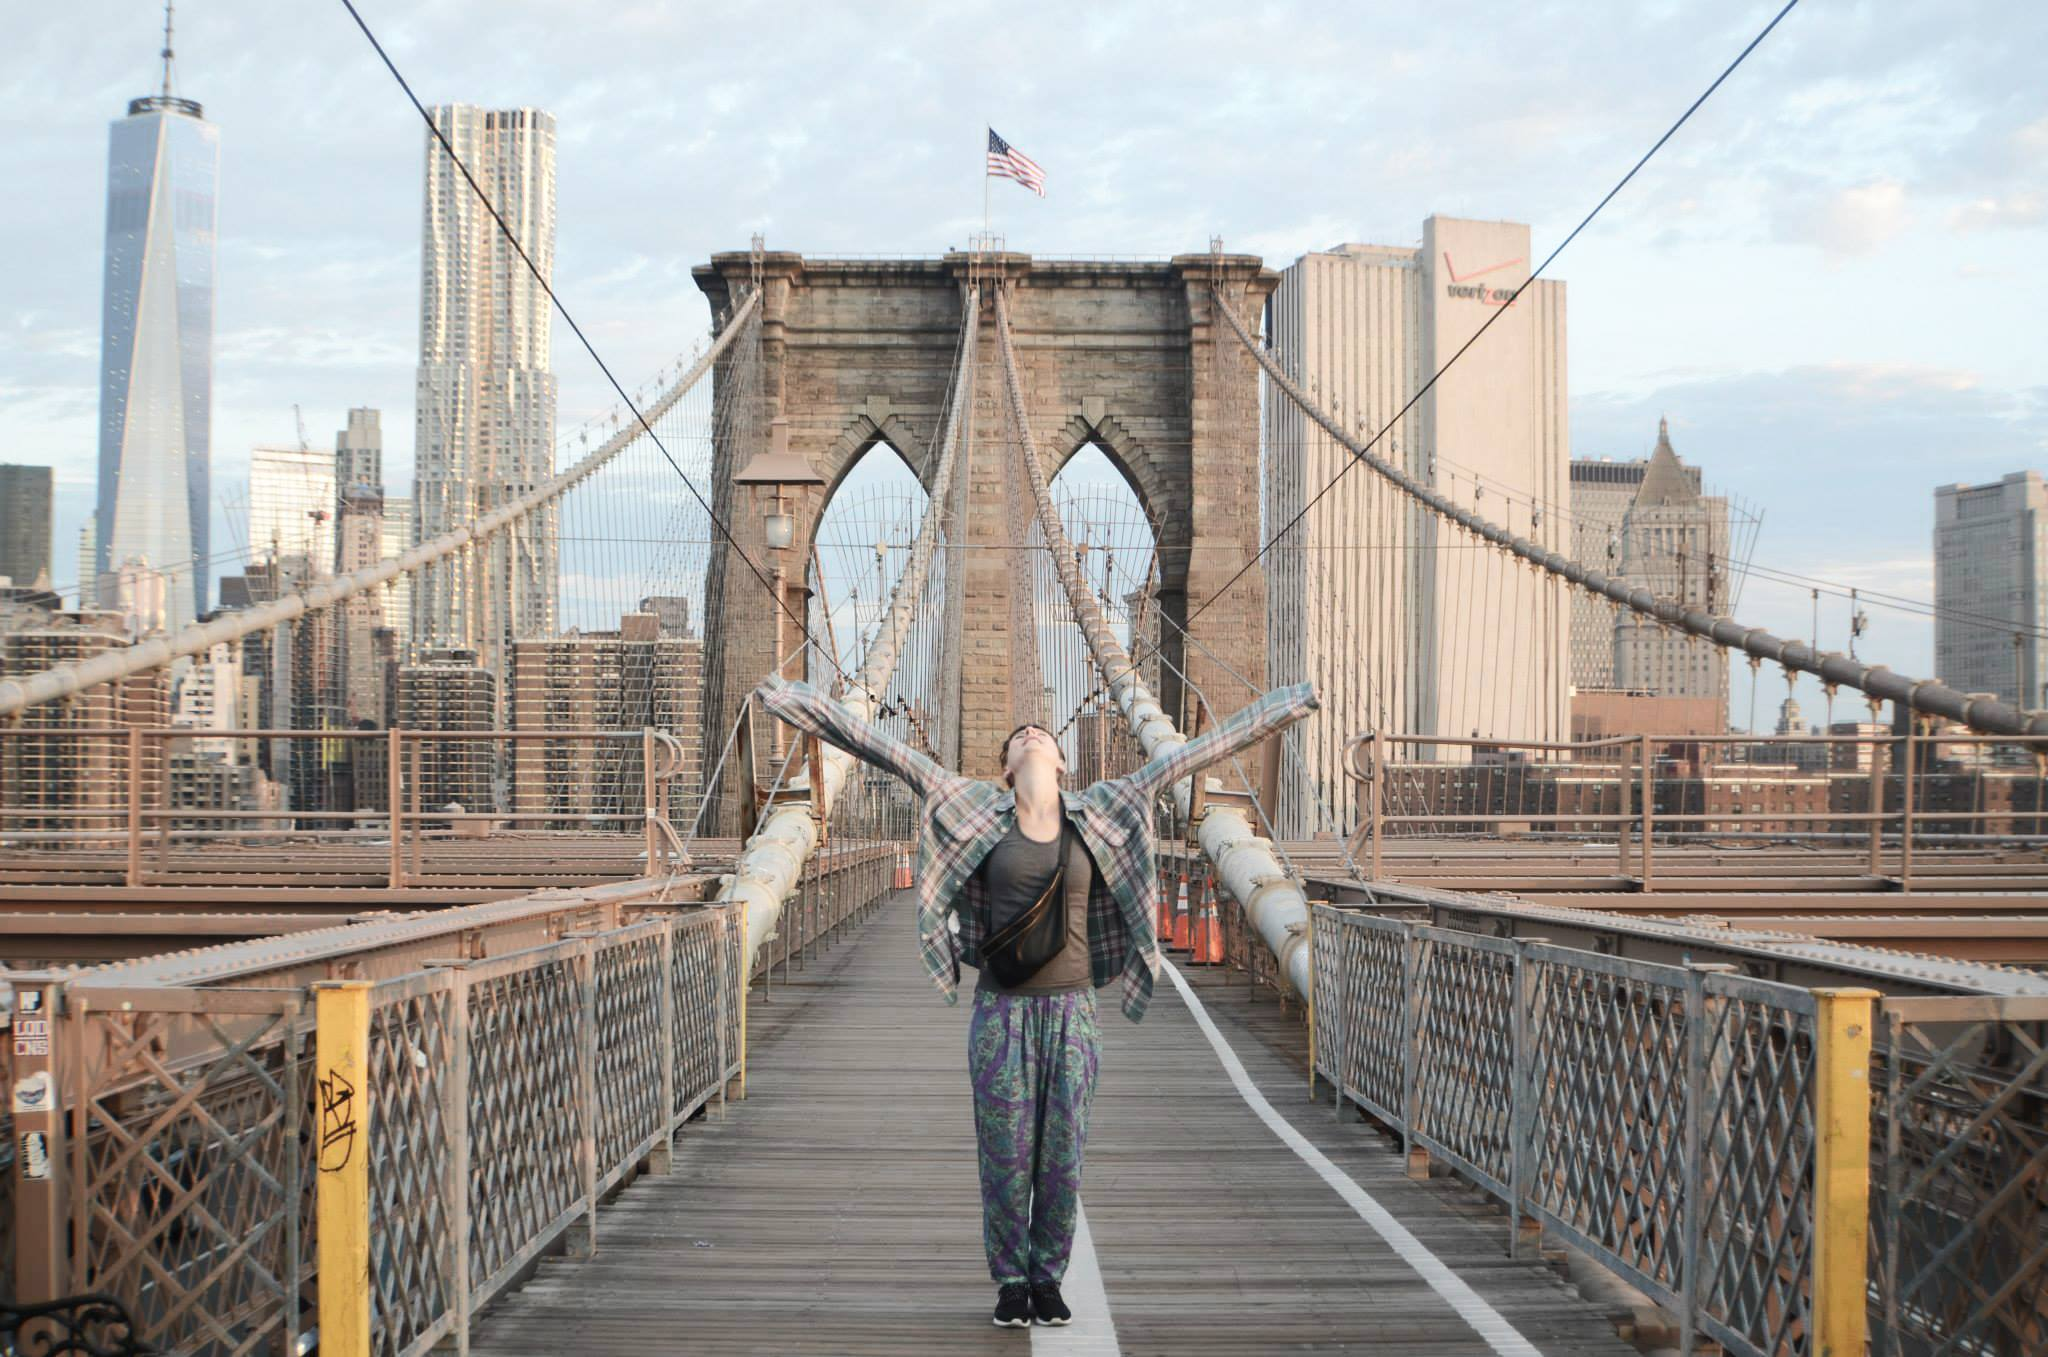 A couple of years ago I spent 2,5 month in NYC. The first part I lived on Upper West Side and later in Fort Greene, Brooklyn. It was the summer of my life.